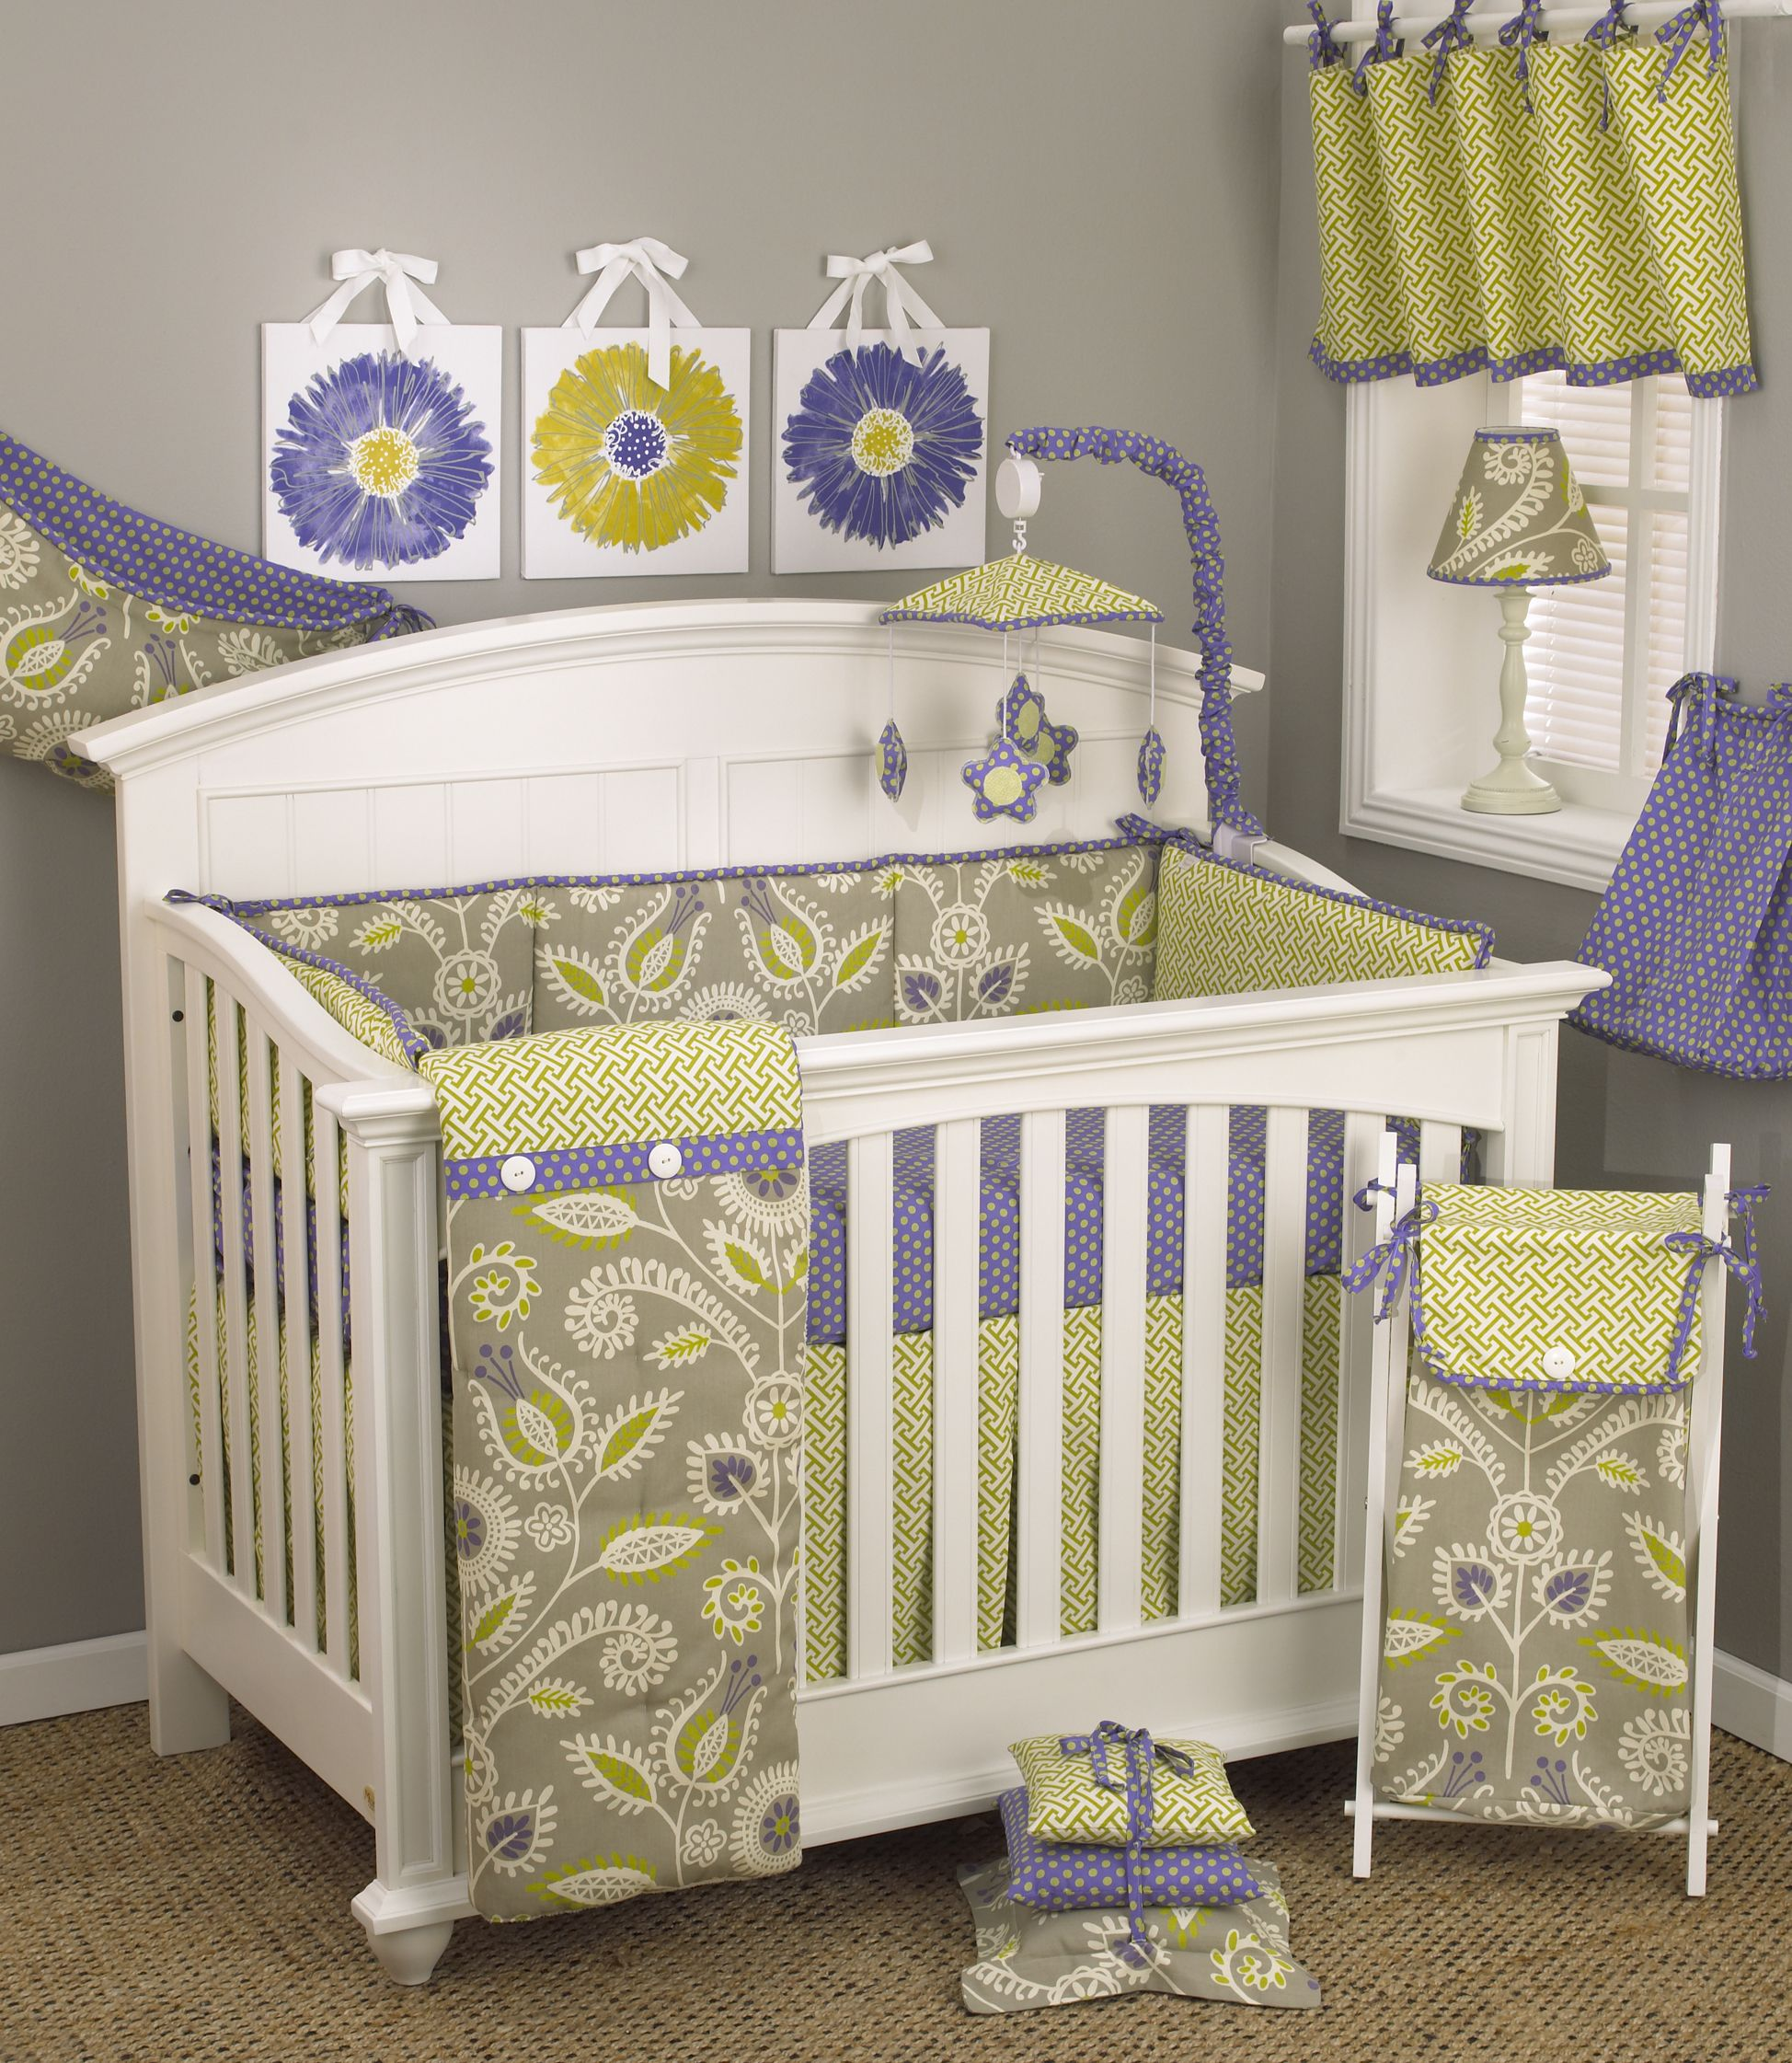 Crib Bedding Sets - Baby Bedding - Baby - Nursery